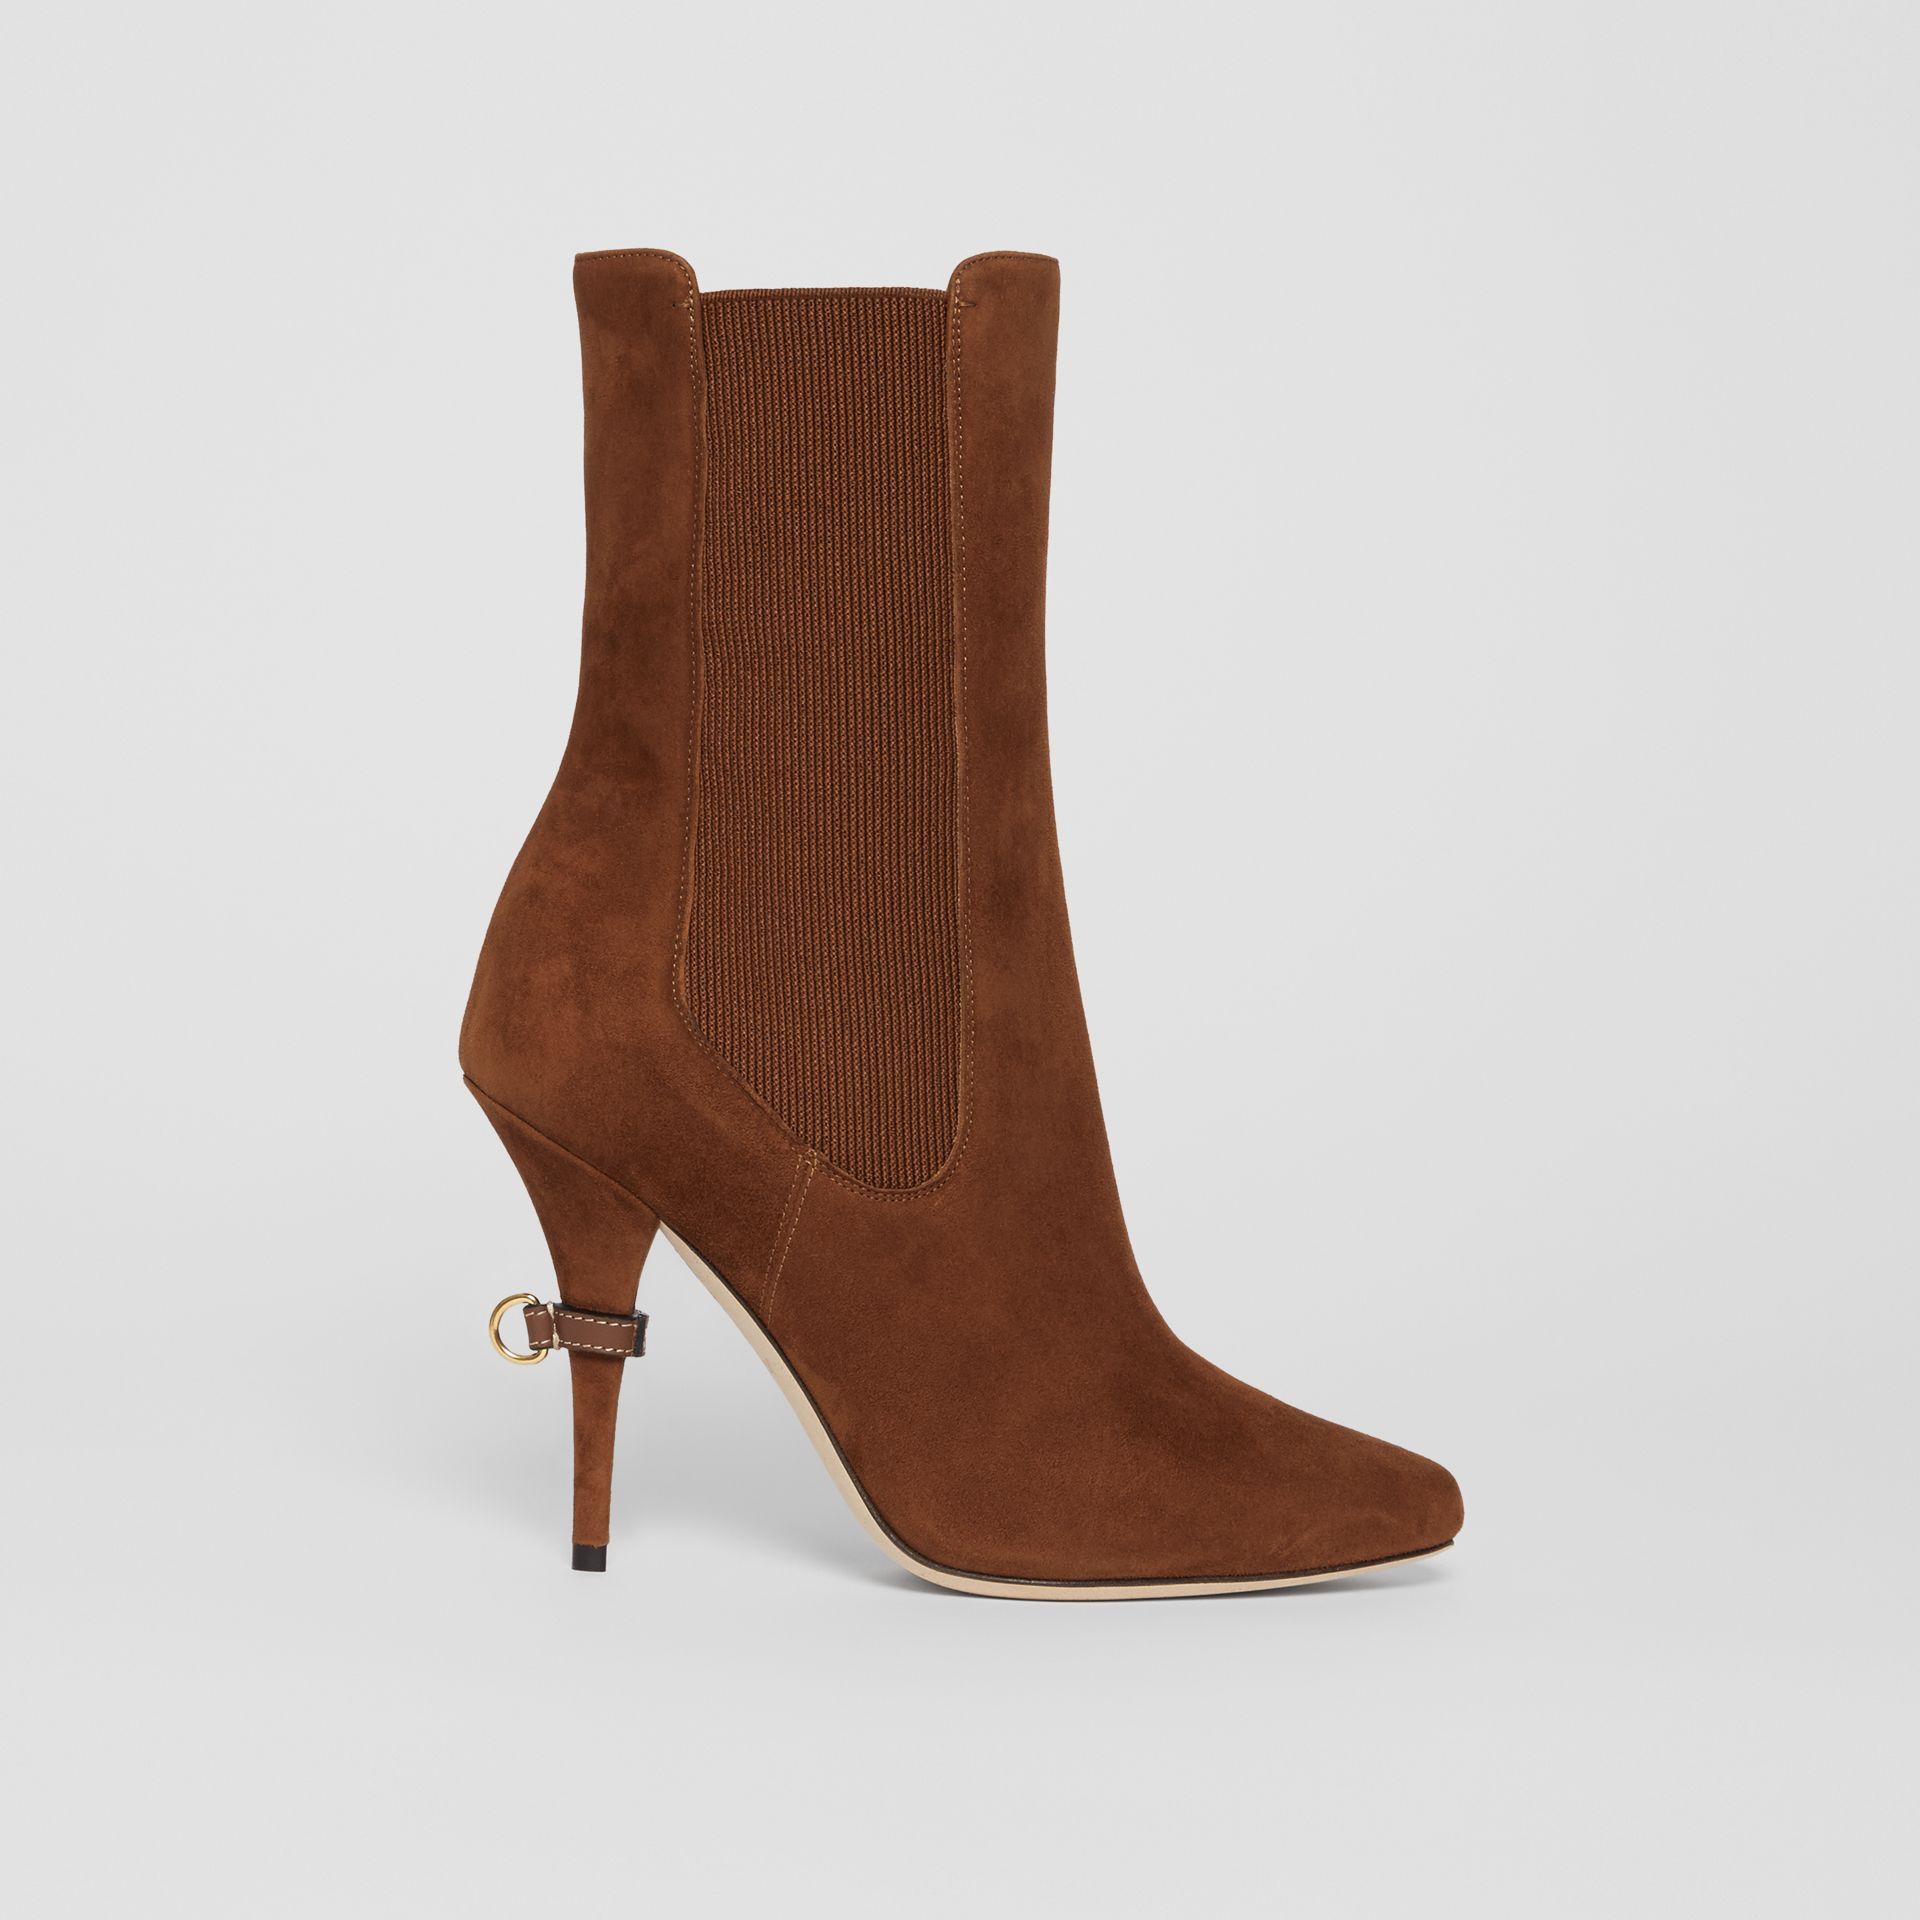 D-ring Detail Suede Ankle Boots in Tan - Women | Burberry - gallery image 5